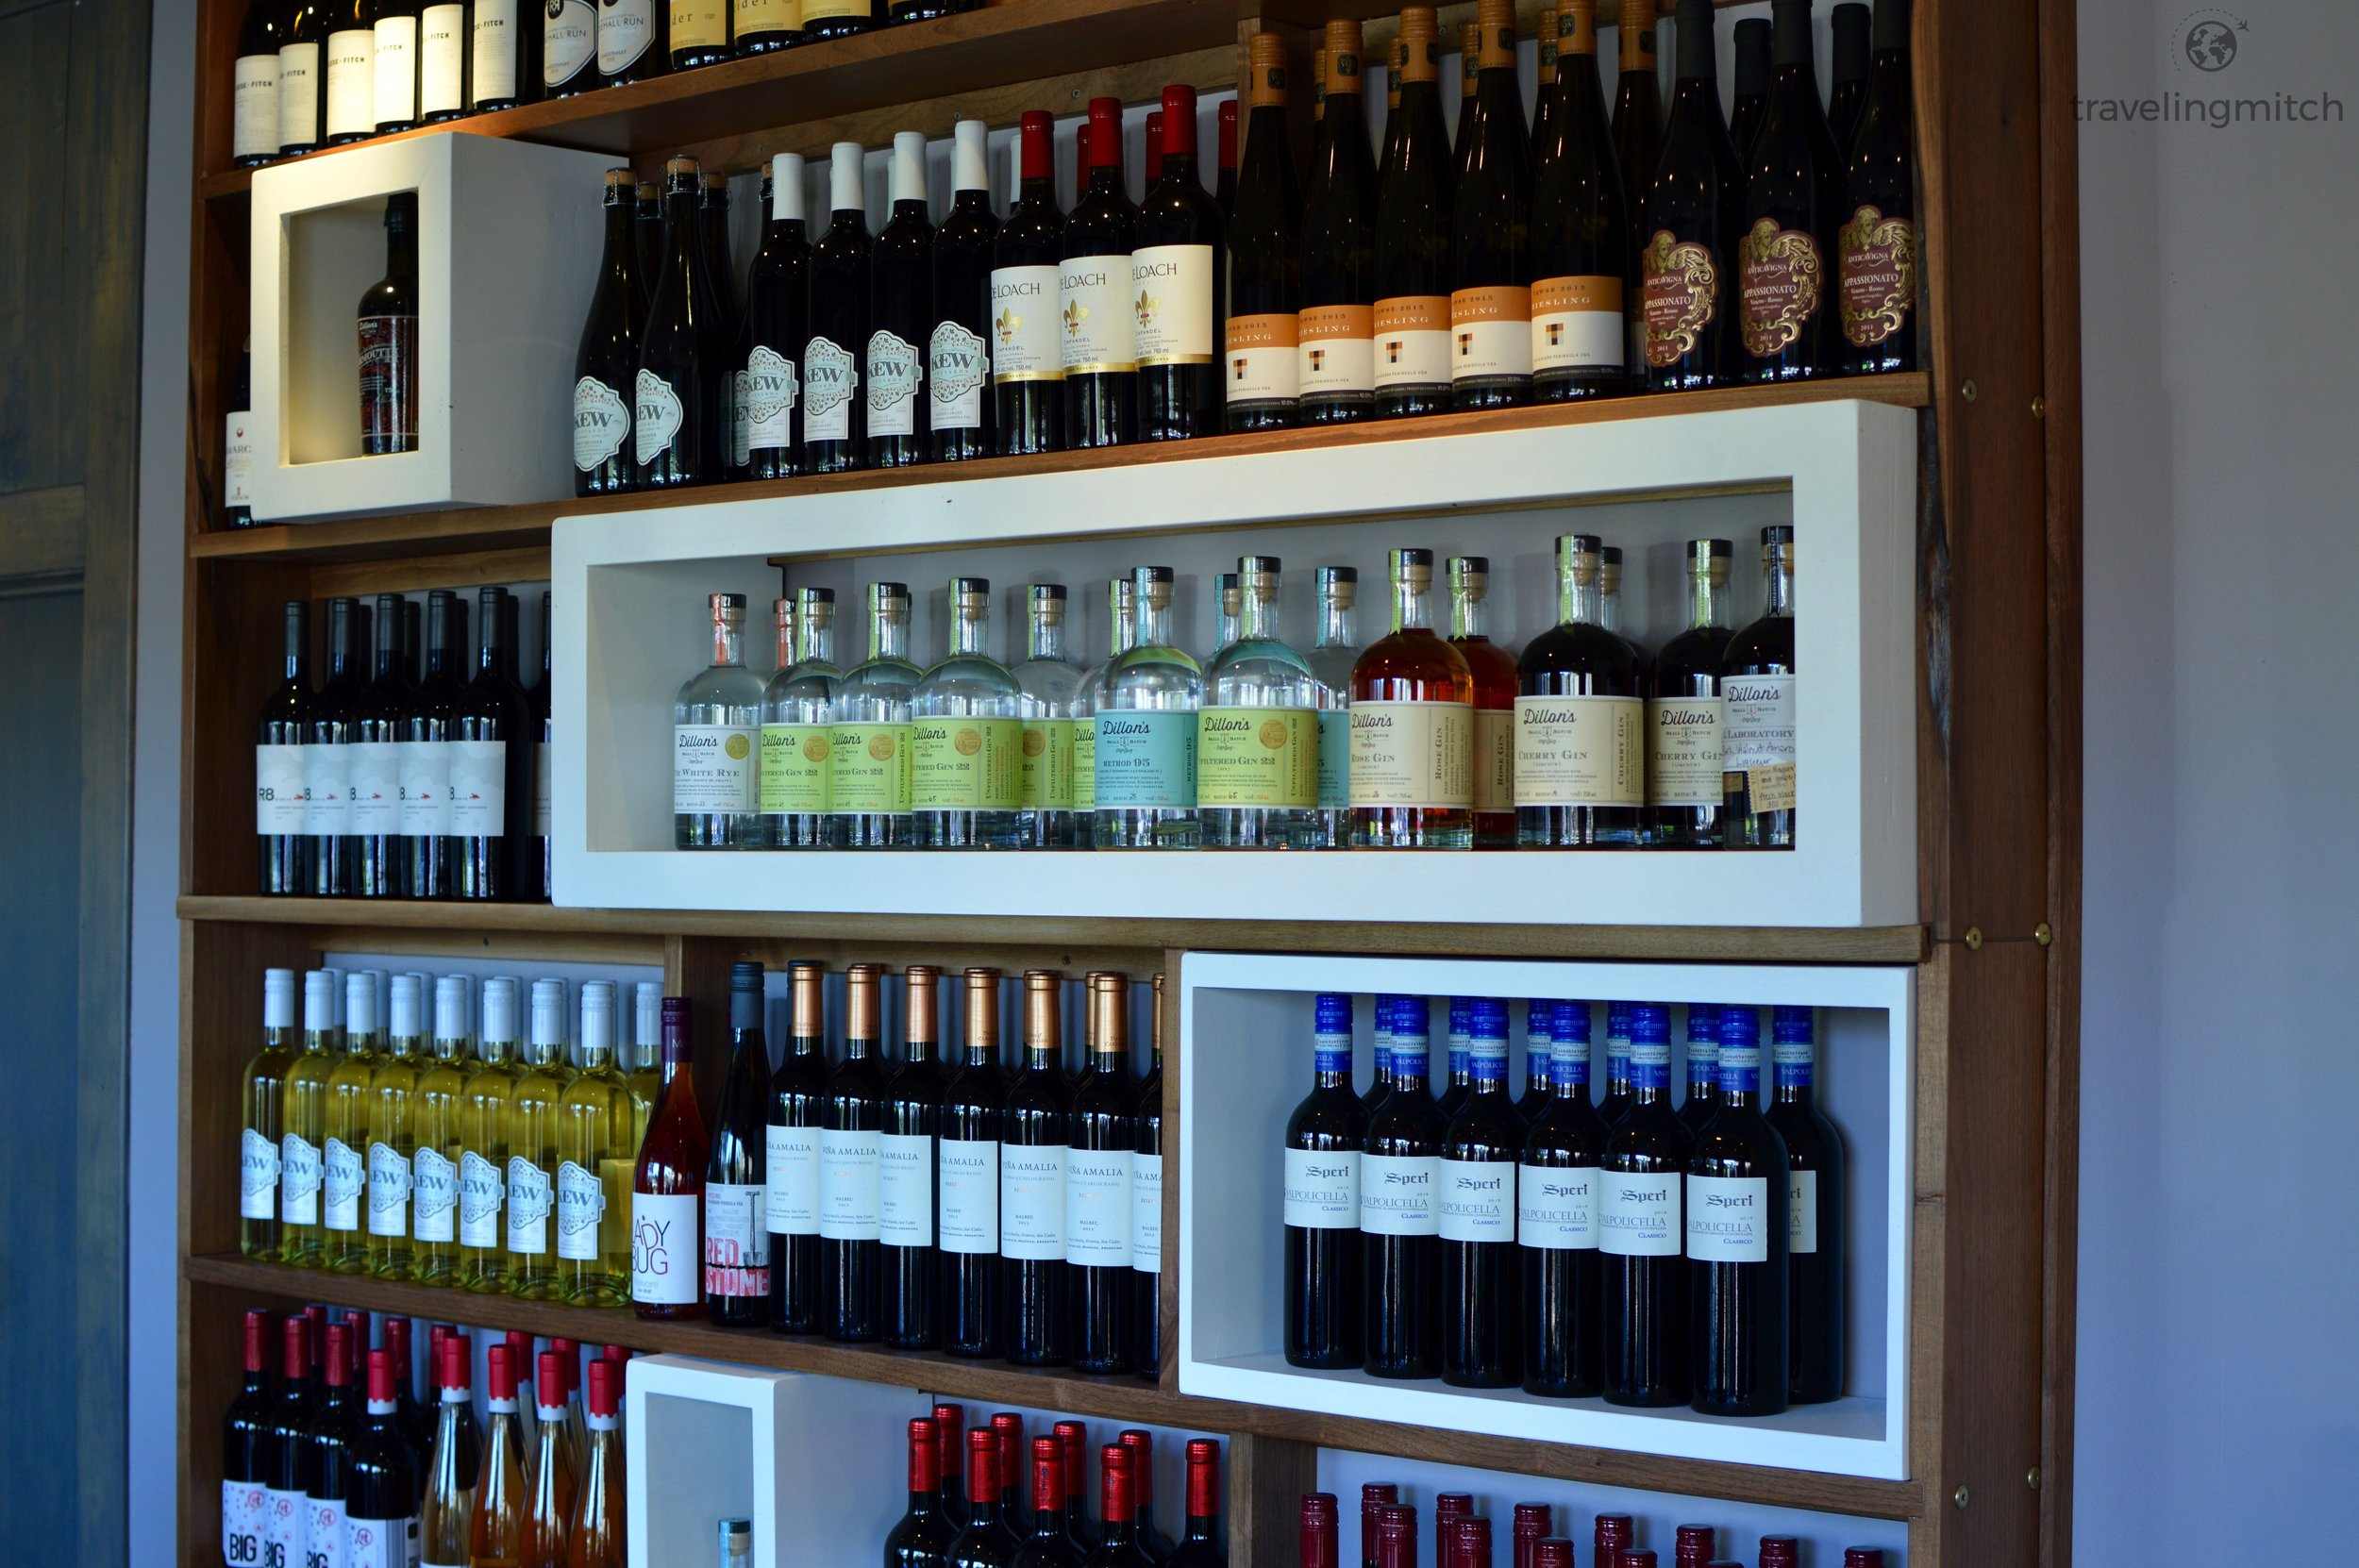 The wine and gin selection at Uxbridge's Urban Pantry